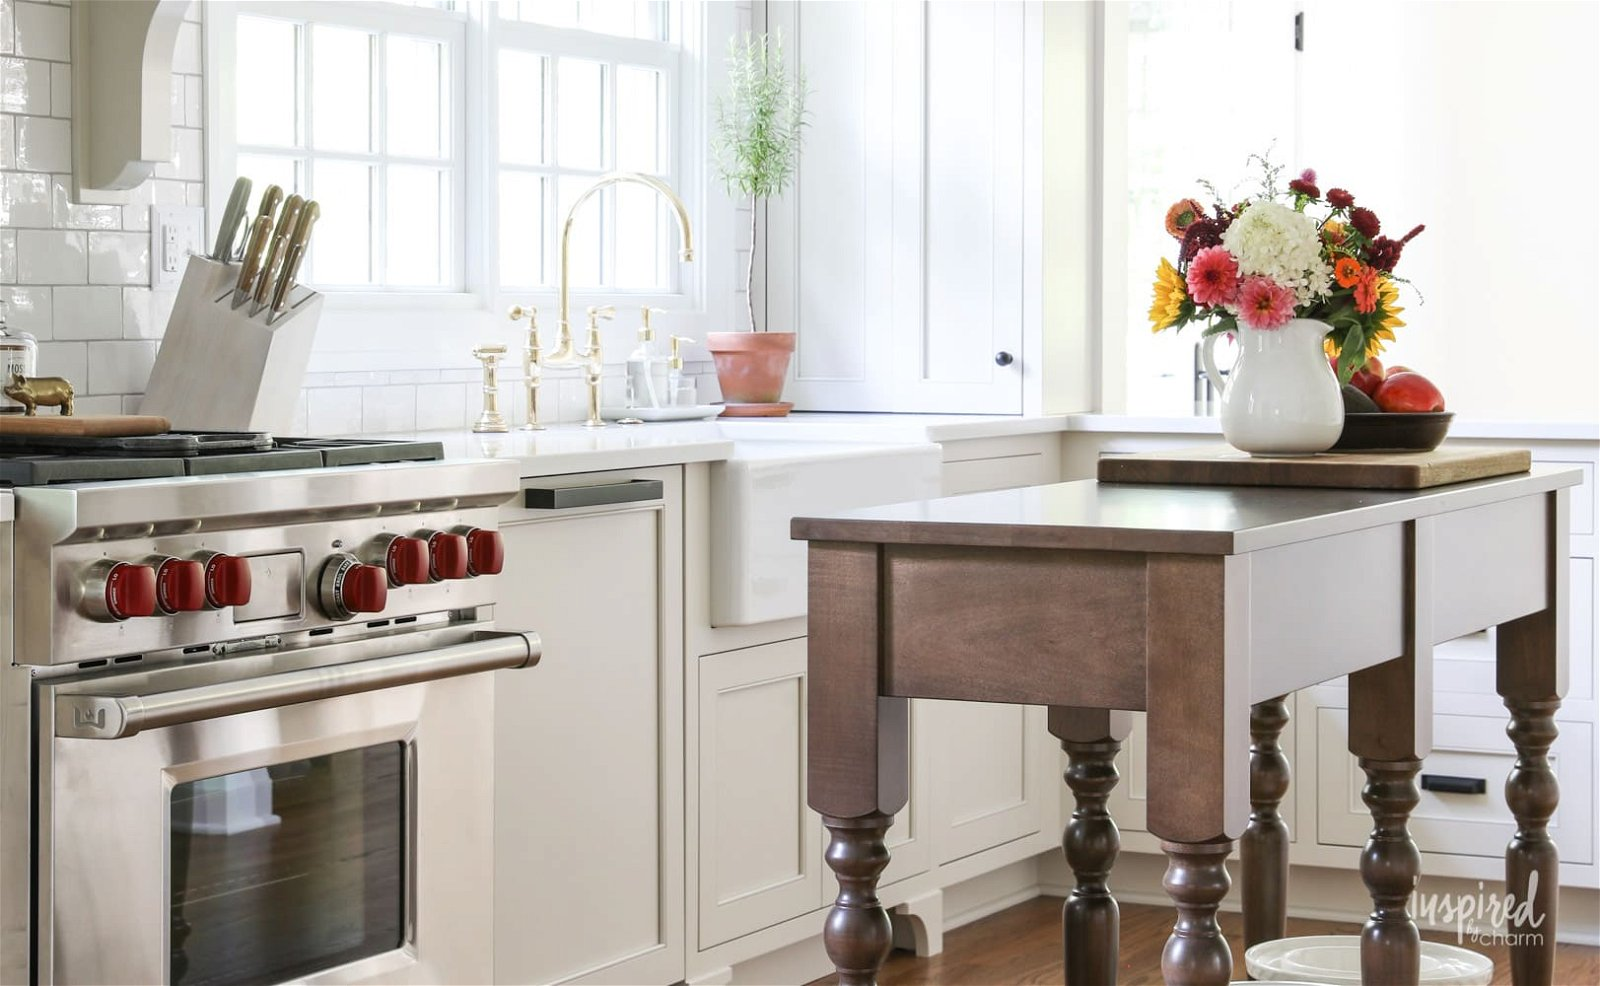 10.Remodel and Glam your Kitchen via Simphome.com